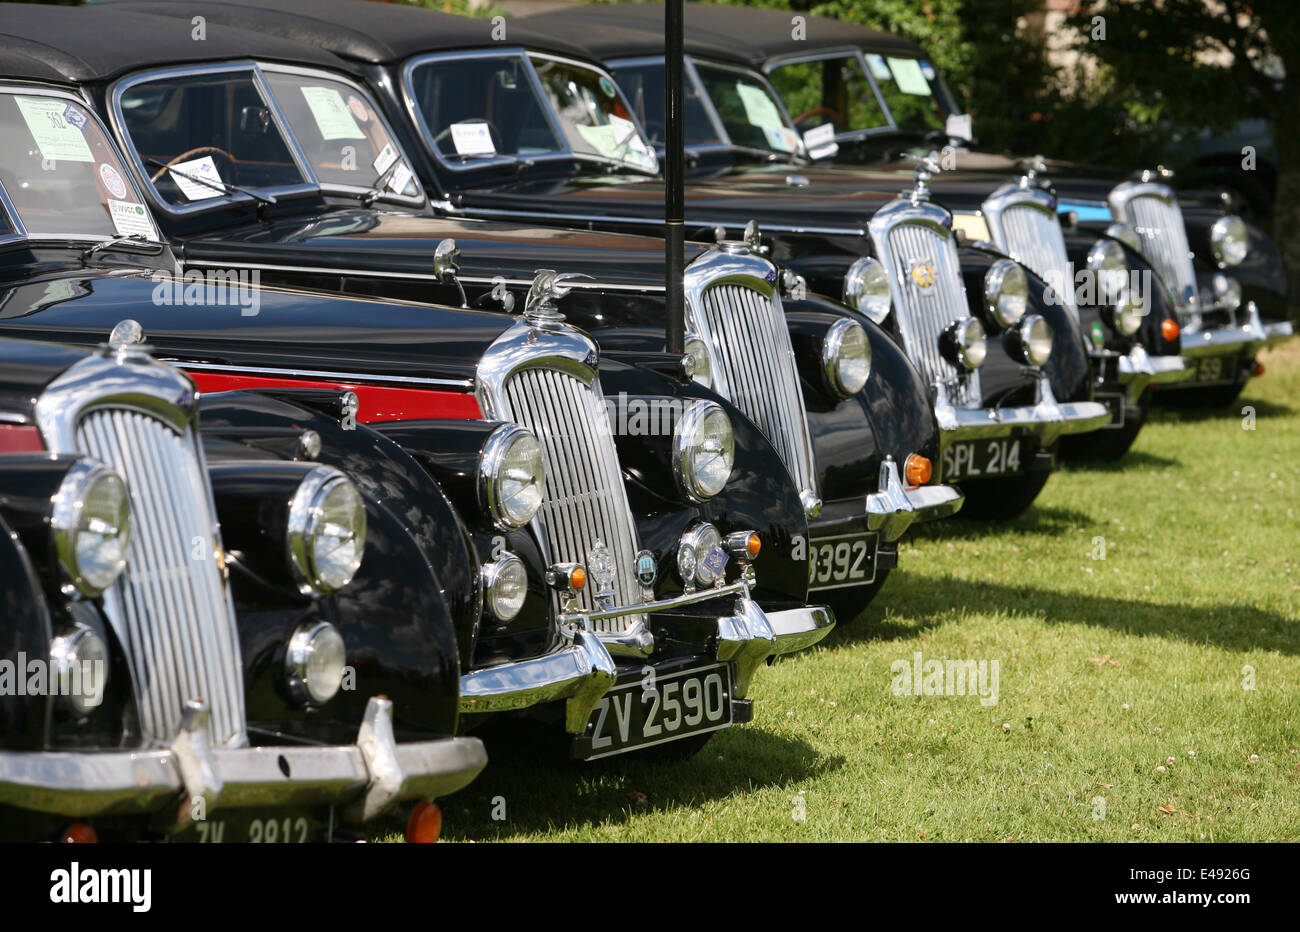 Dublin, Ireland. 6th July, 2014. Terenure Classic and Vintage car ...